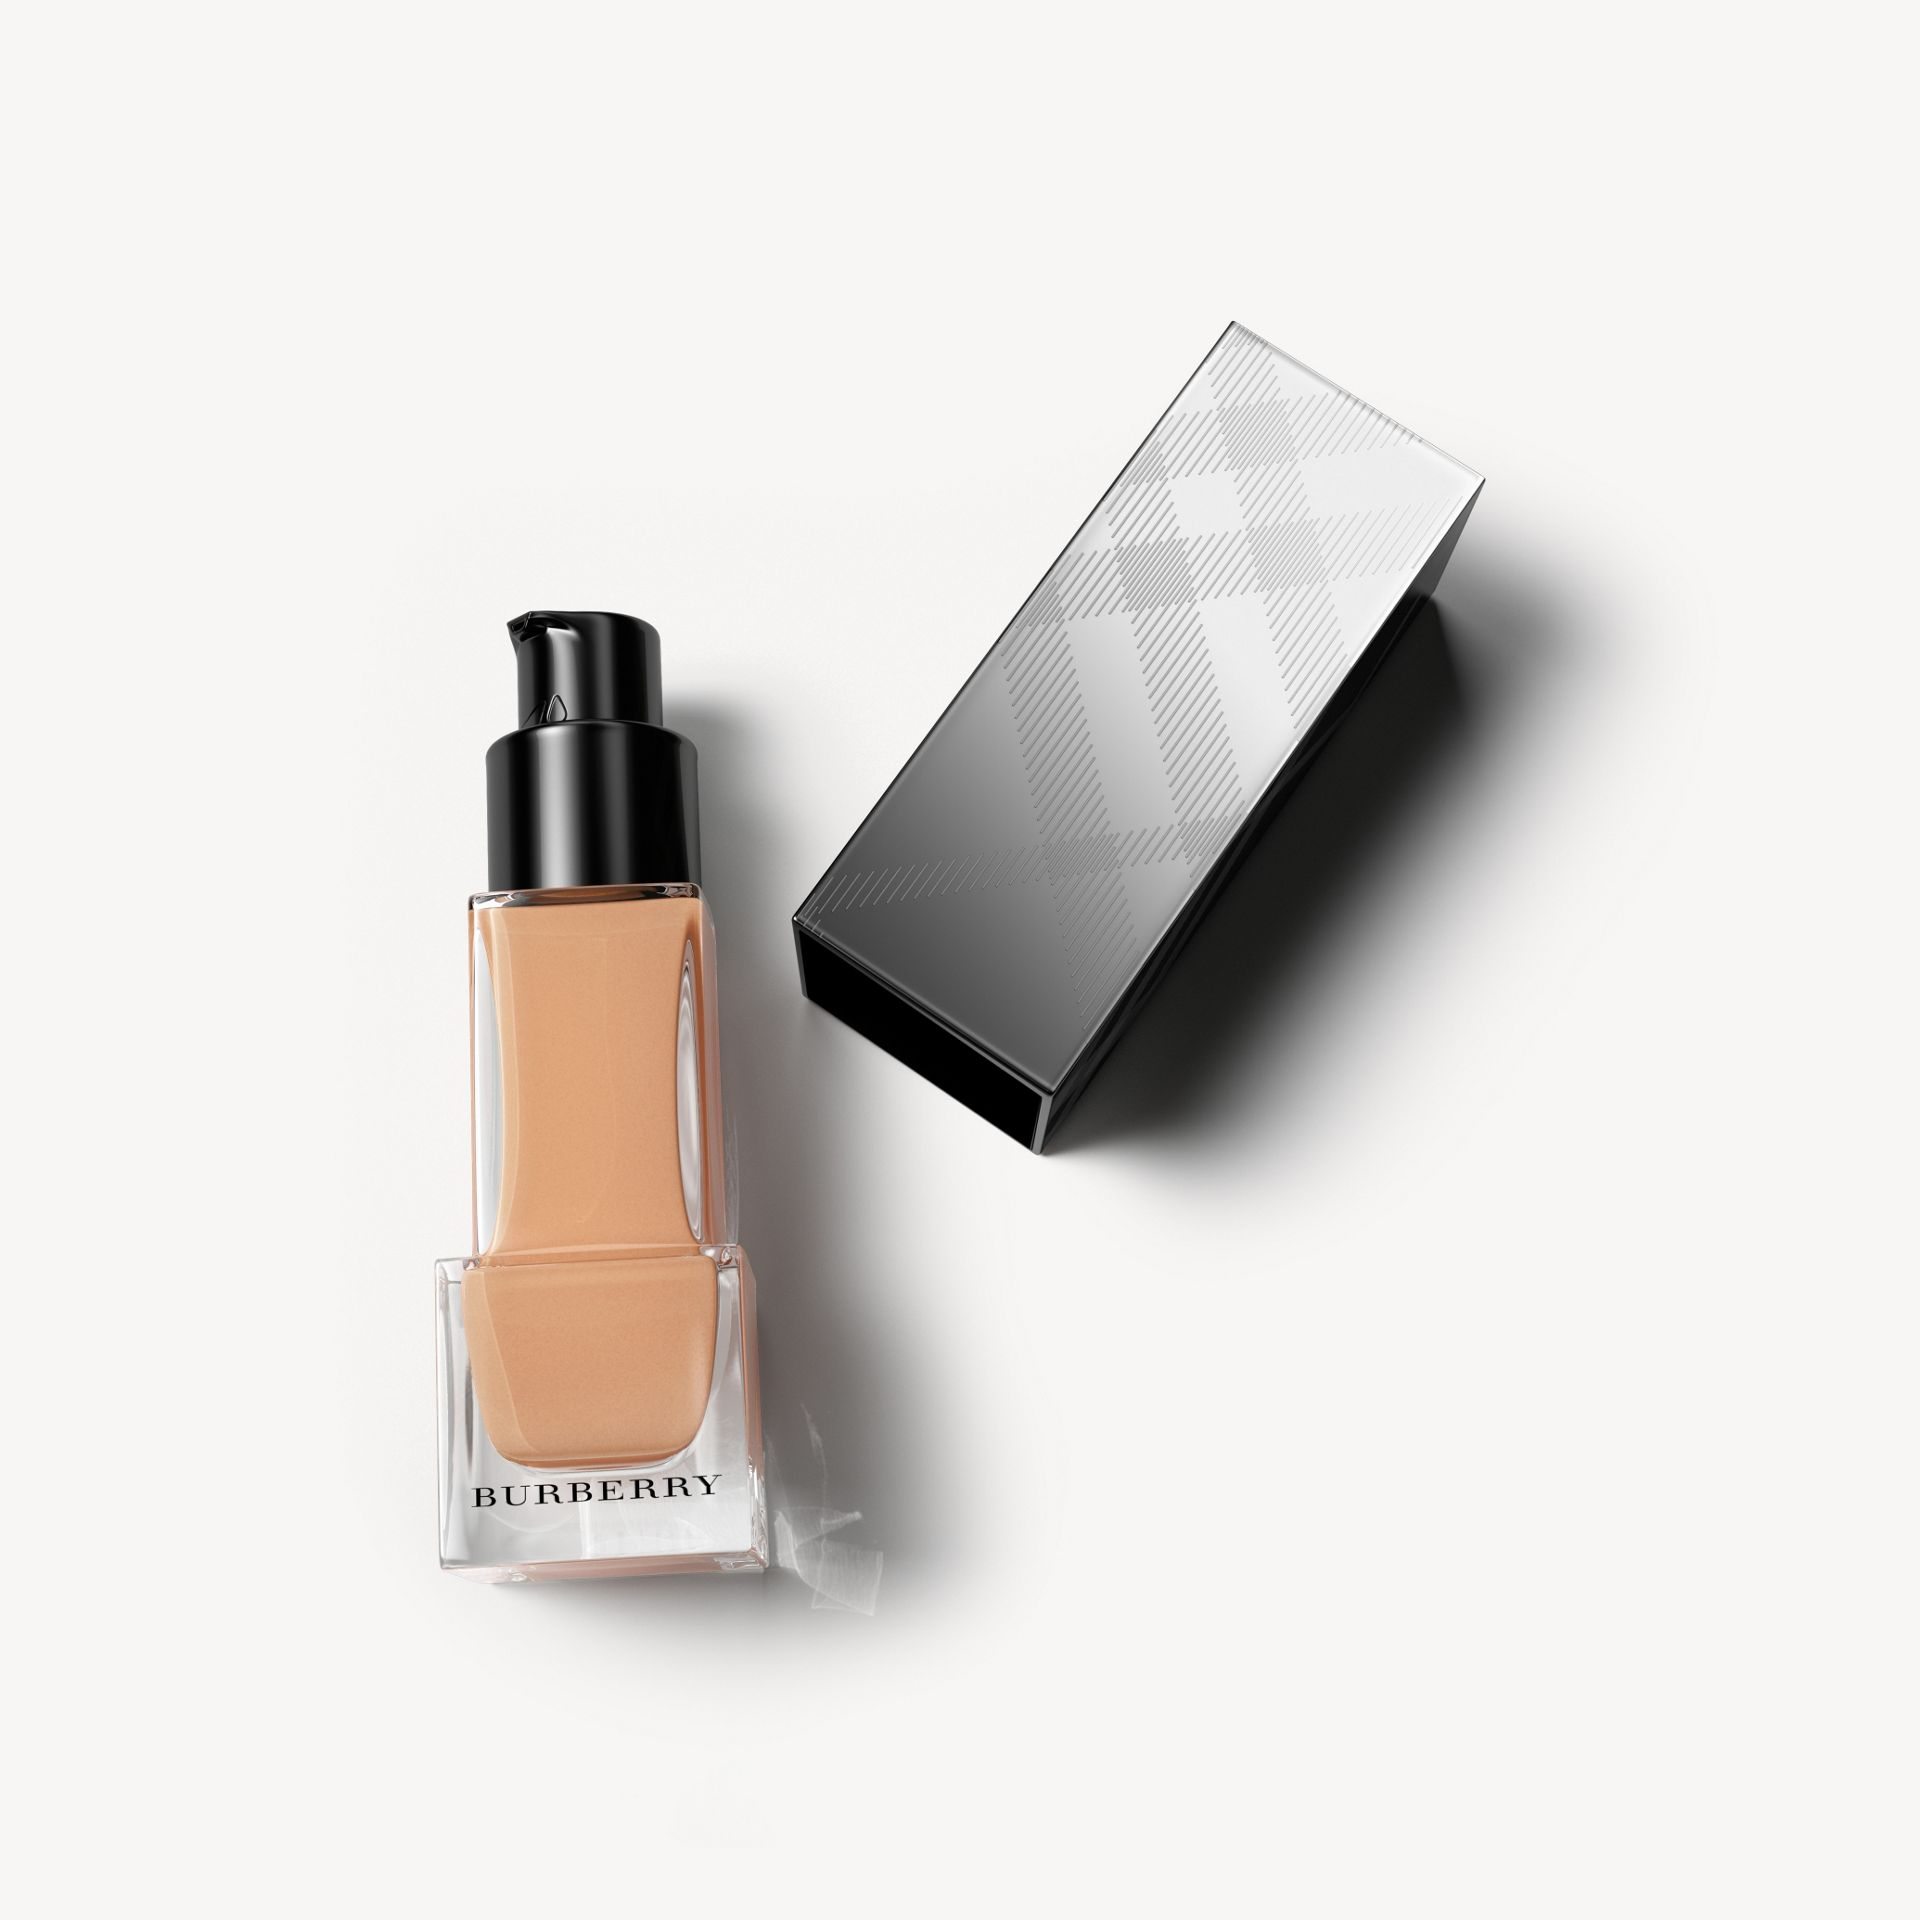 Warm nude 34 Fresh Glow Foundation mit LSF 15 PA+++ – Warm Nude No.34 - Galerie-Bild 1